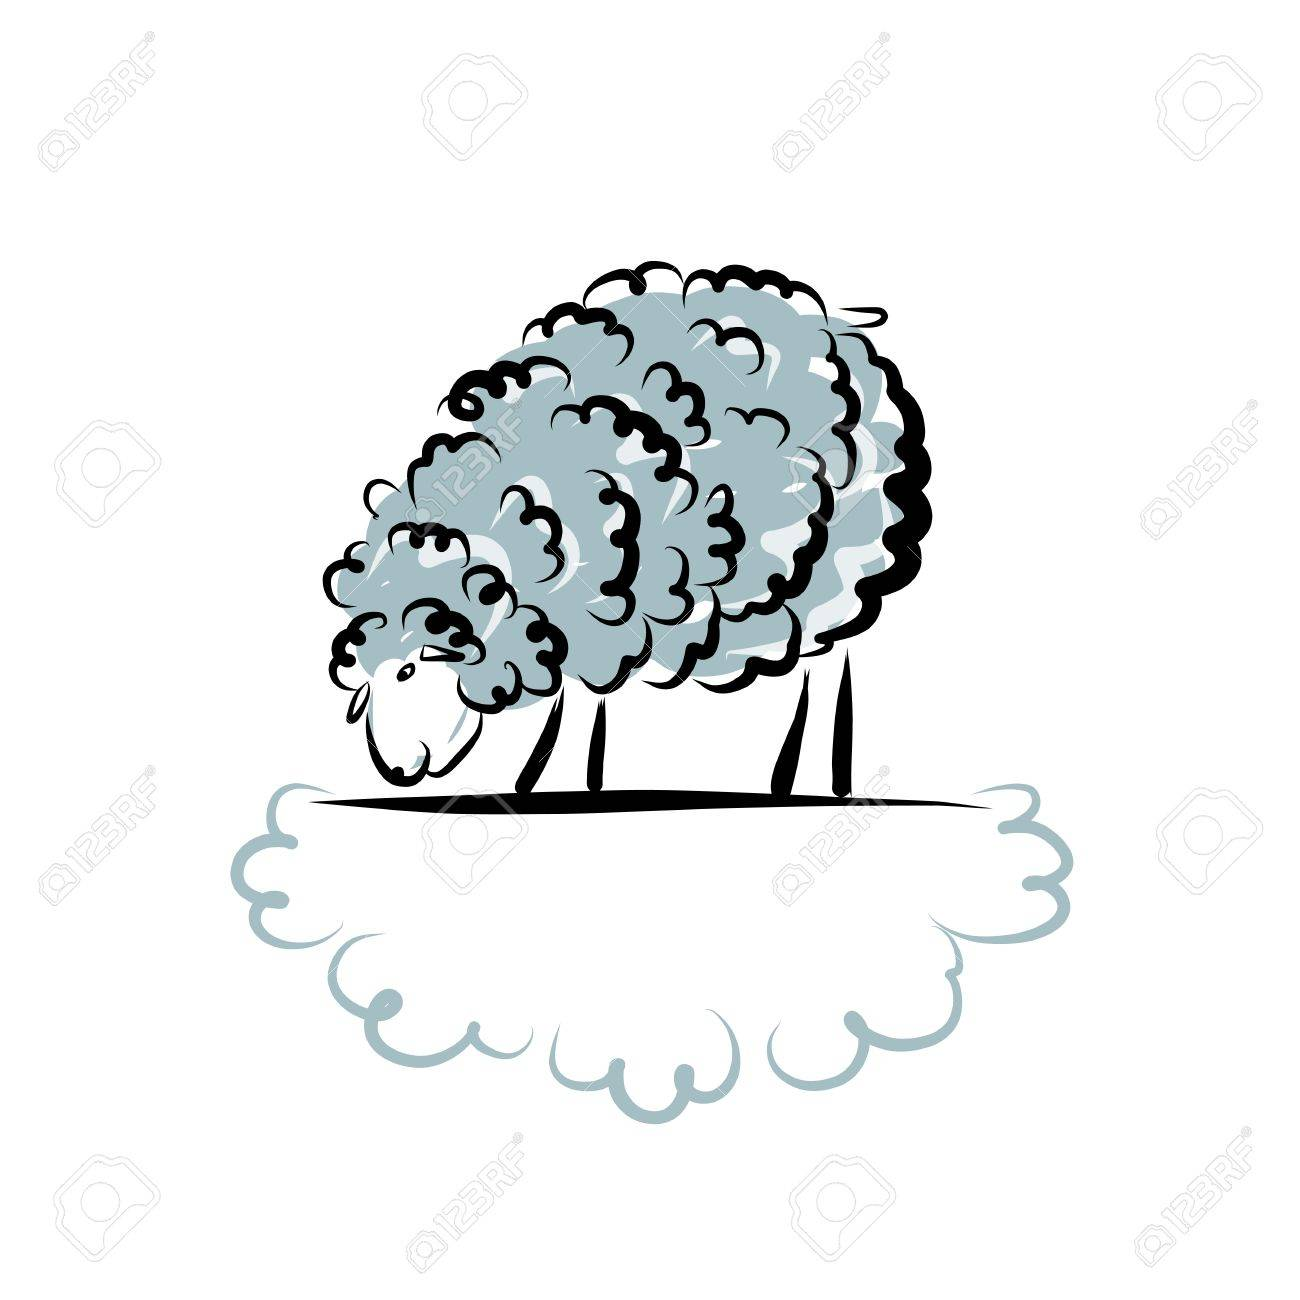 Sheep Sketch For Your Design. Vector Illustration Royalty Free ...